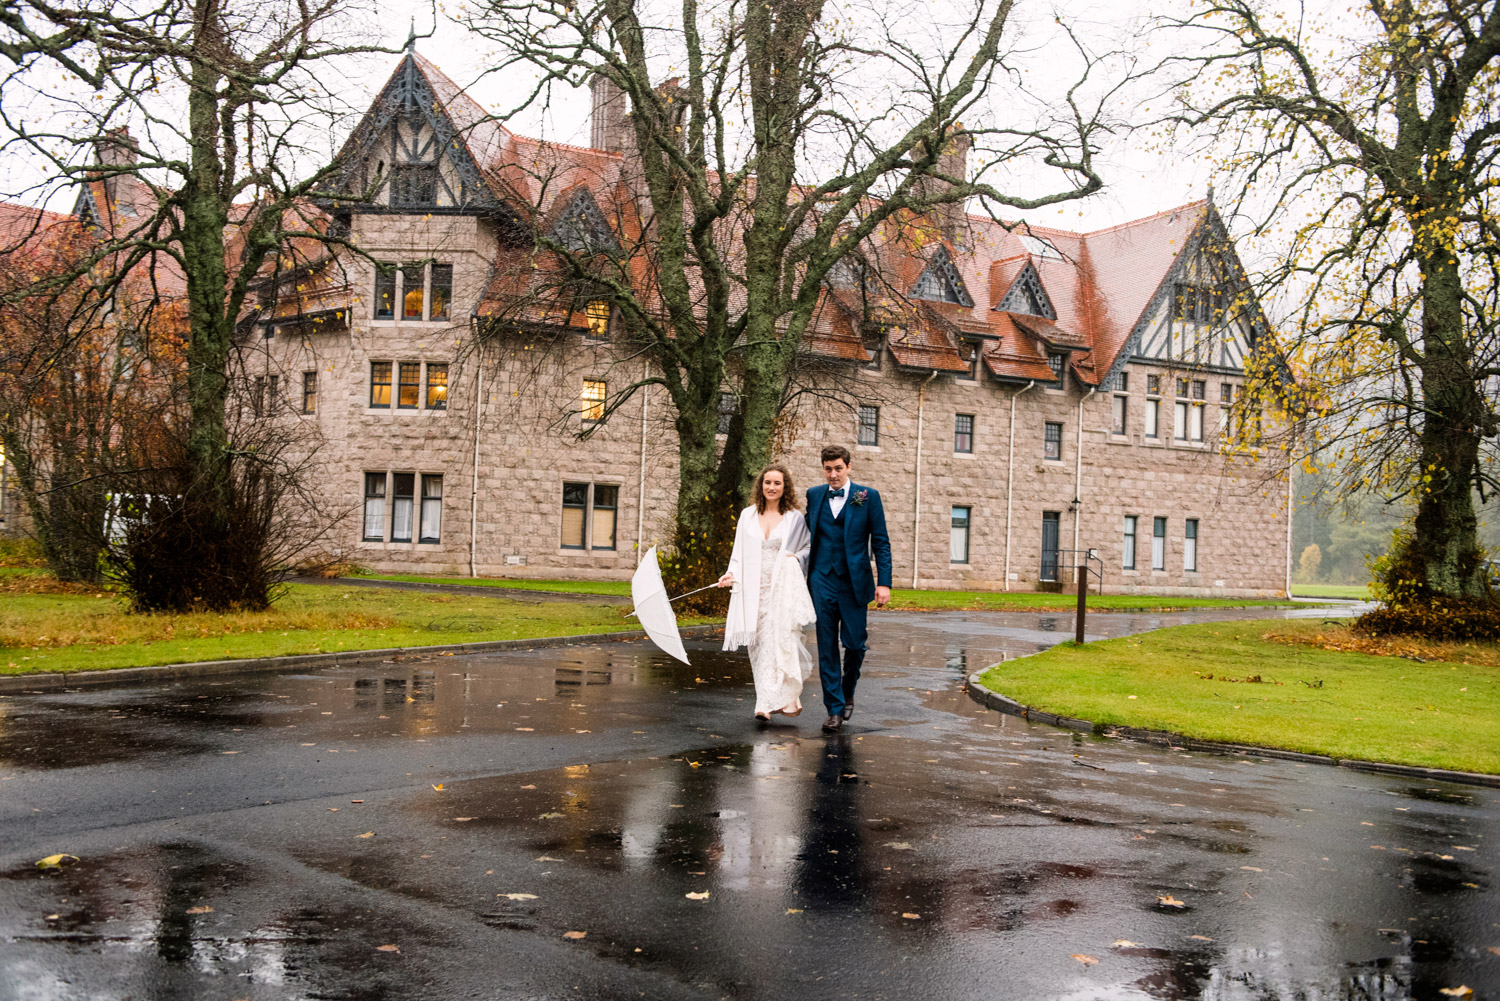 mar-lodge-wedding-under-rain